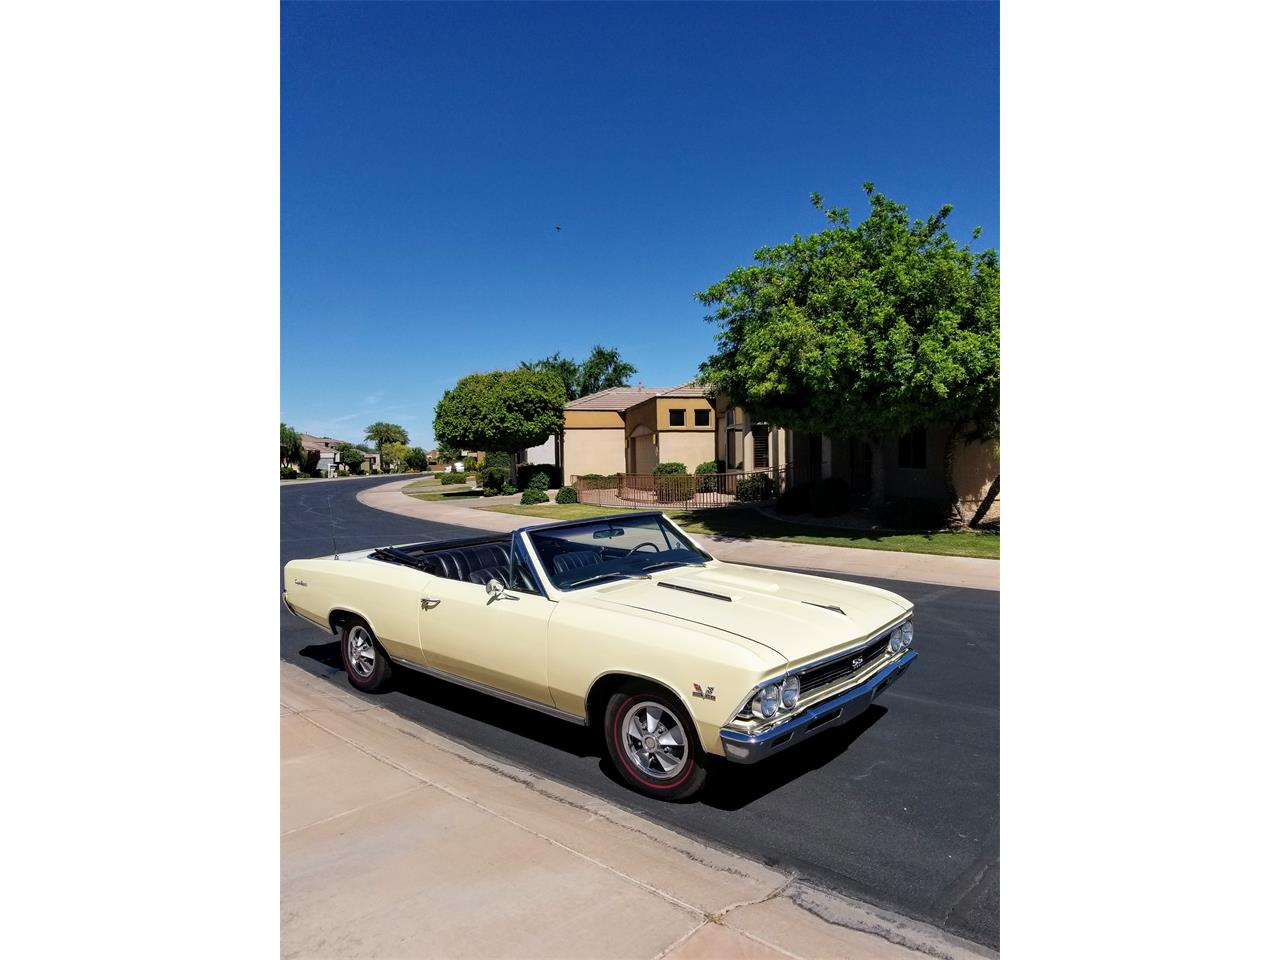 Large Picture of '66 Chevrolet Chevelle SS located in SCOTTSDALE Arizona - Q4KO